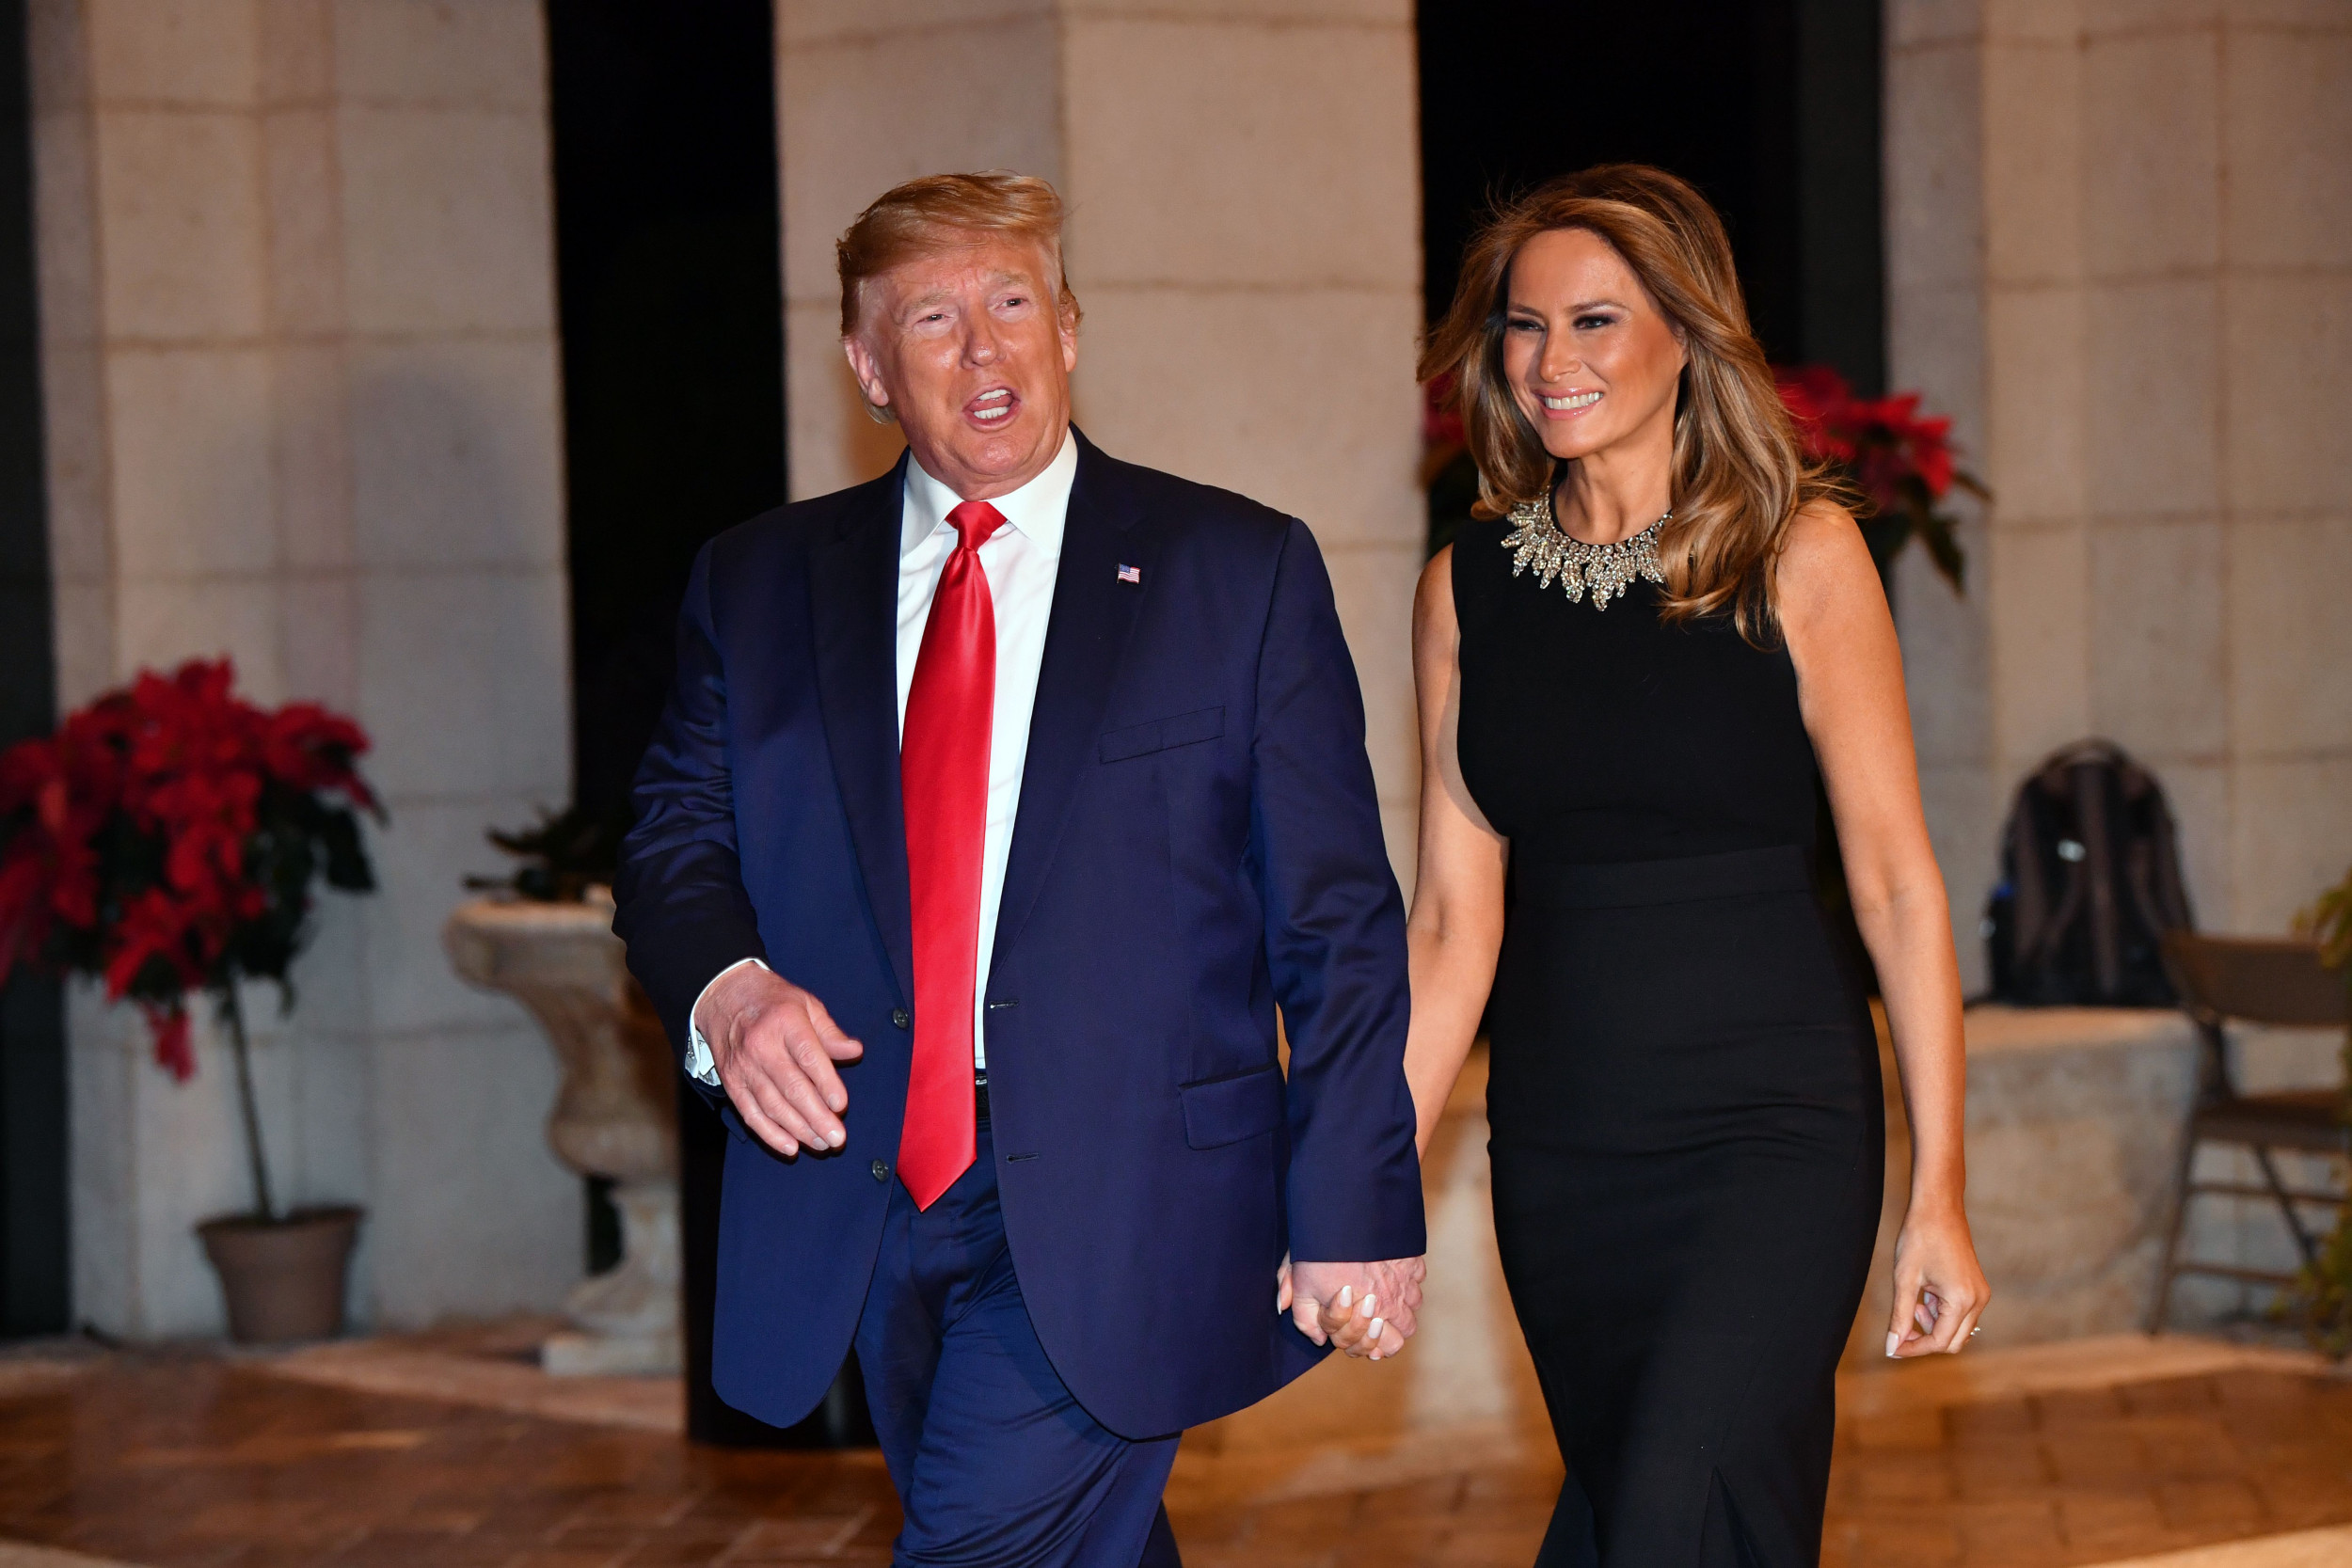 Melania Trump Christmas With The Troops 2020 Donald Trump Tells Troops He's 'Still Working on a Christmas